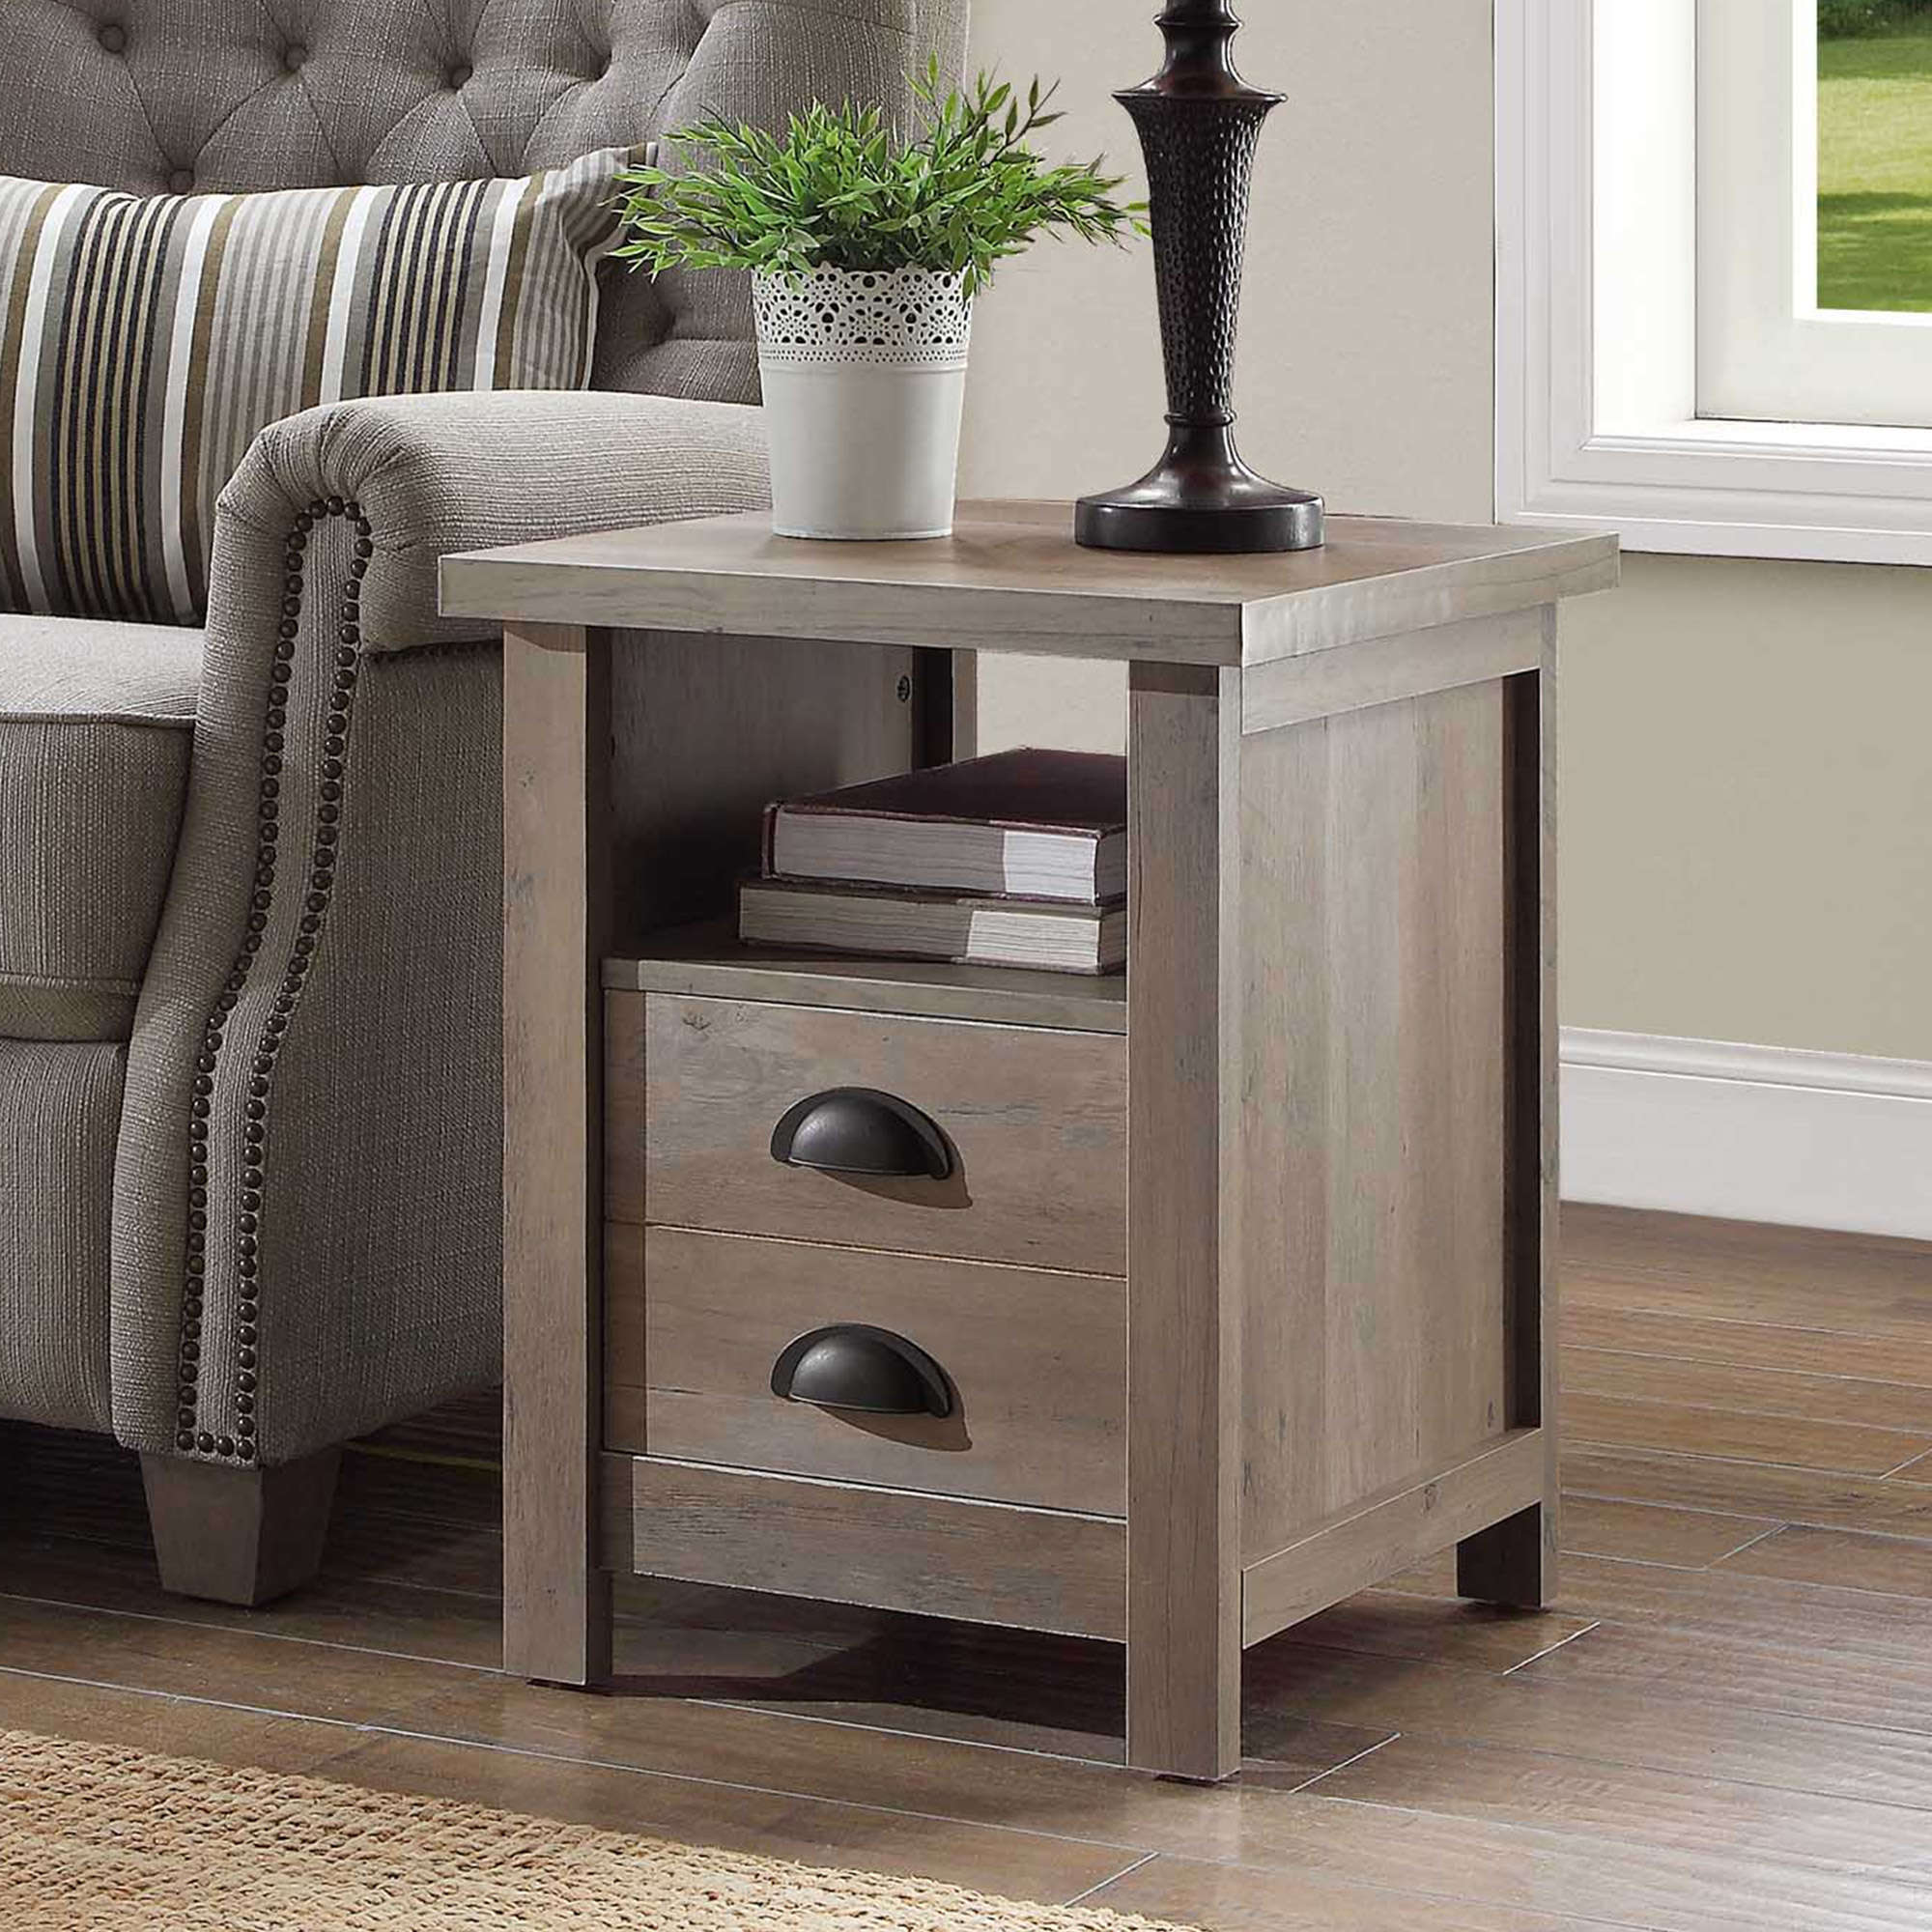 better homes and gardens granary modern farmhouse end table accent multiple finishes oversized comfy chair mission style coffee plans leather sectional edmonton contemporary lamp